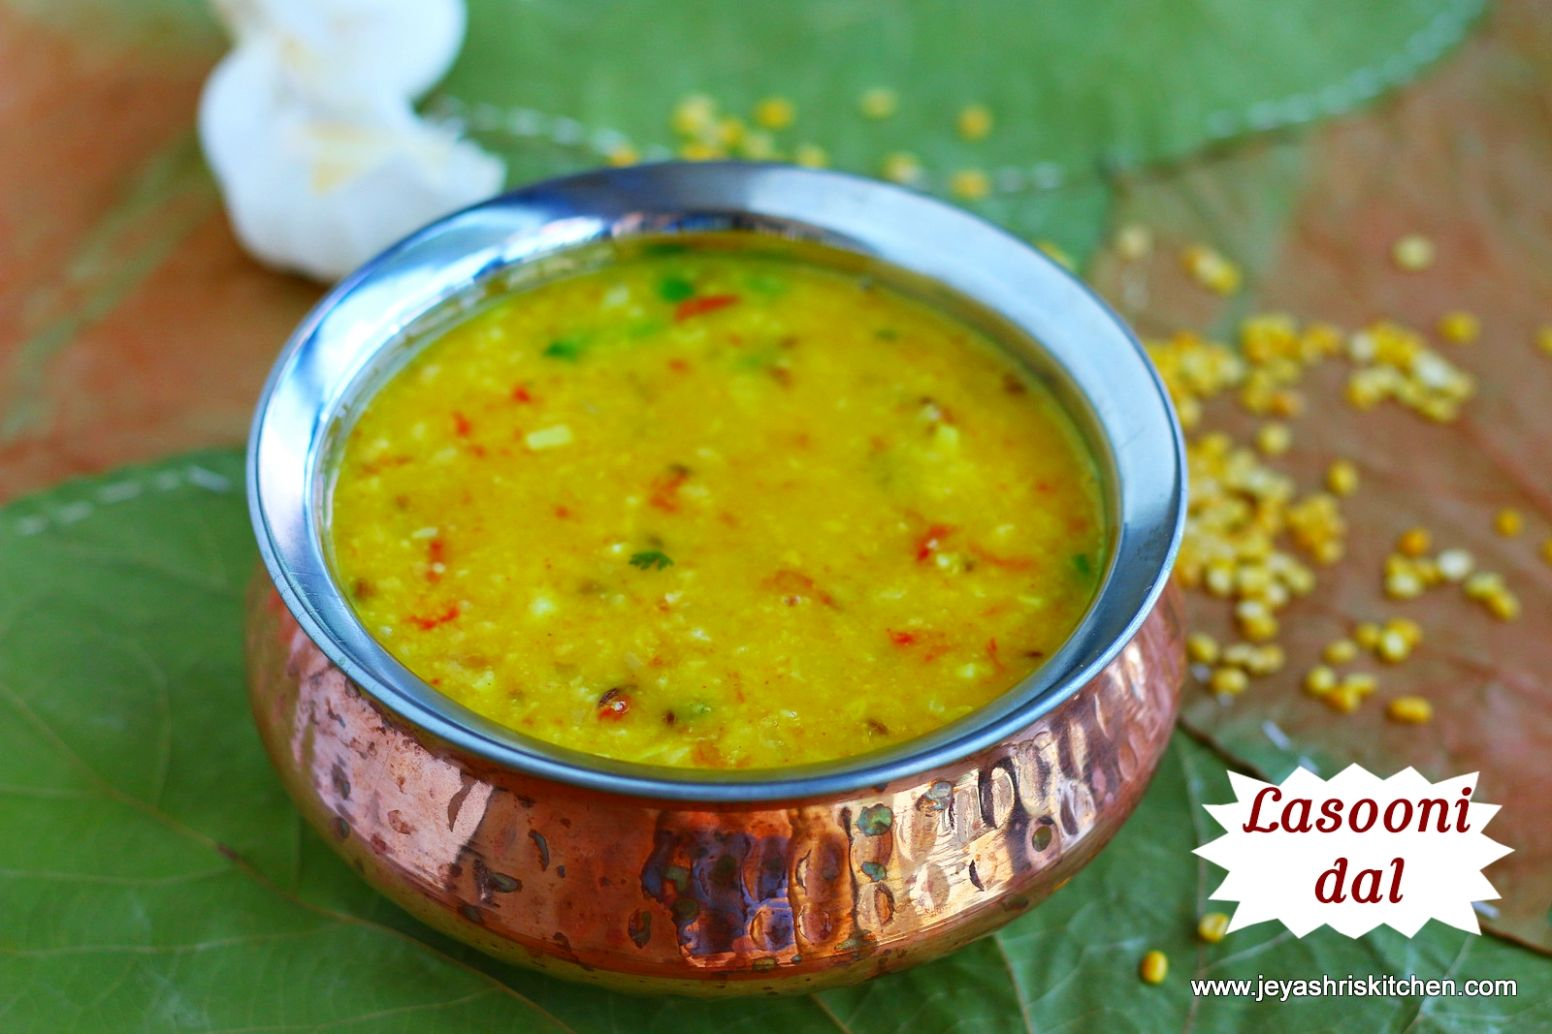 Lasooni dal tadka recipe, Garlic dal recipe by Jeyashri's Kitchen